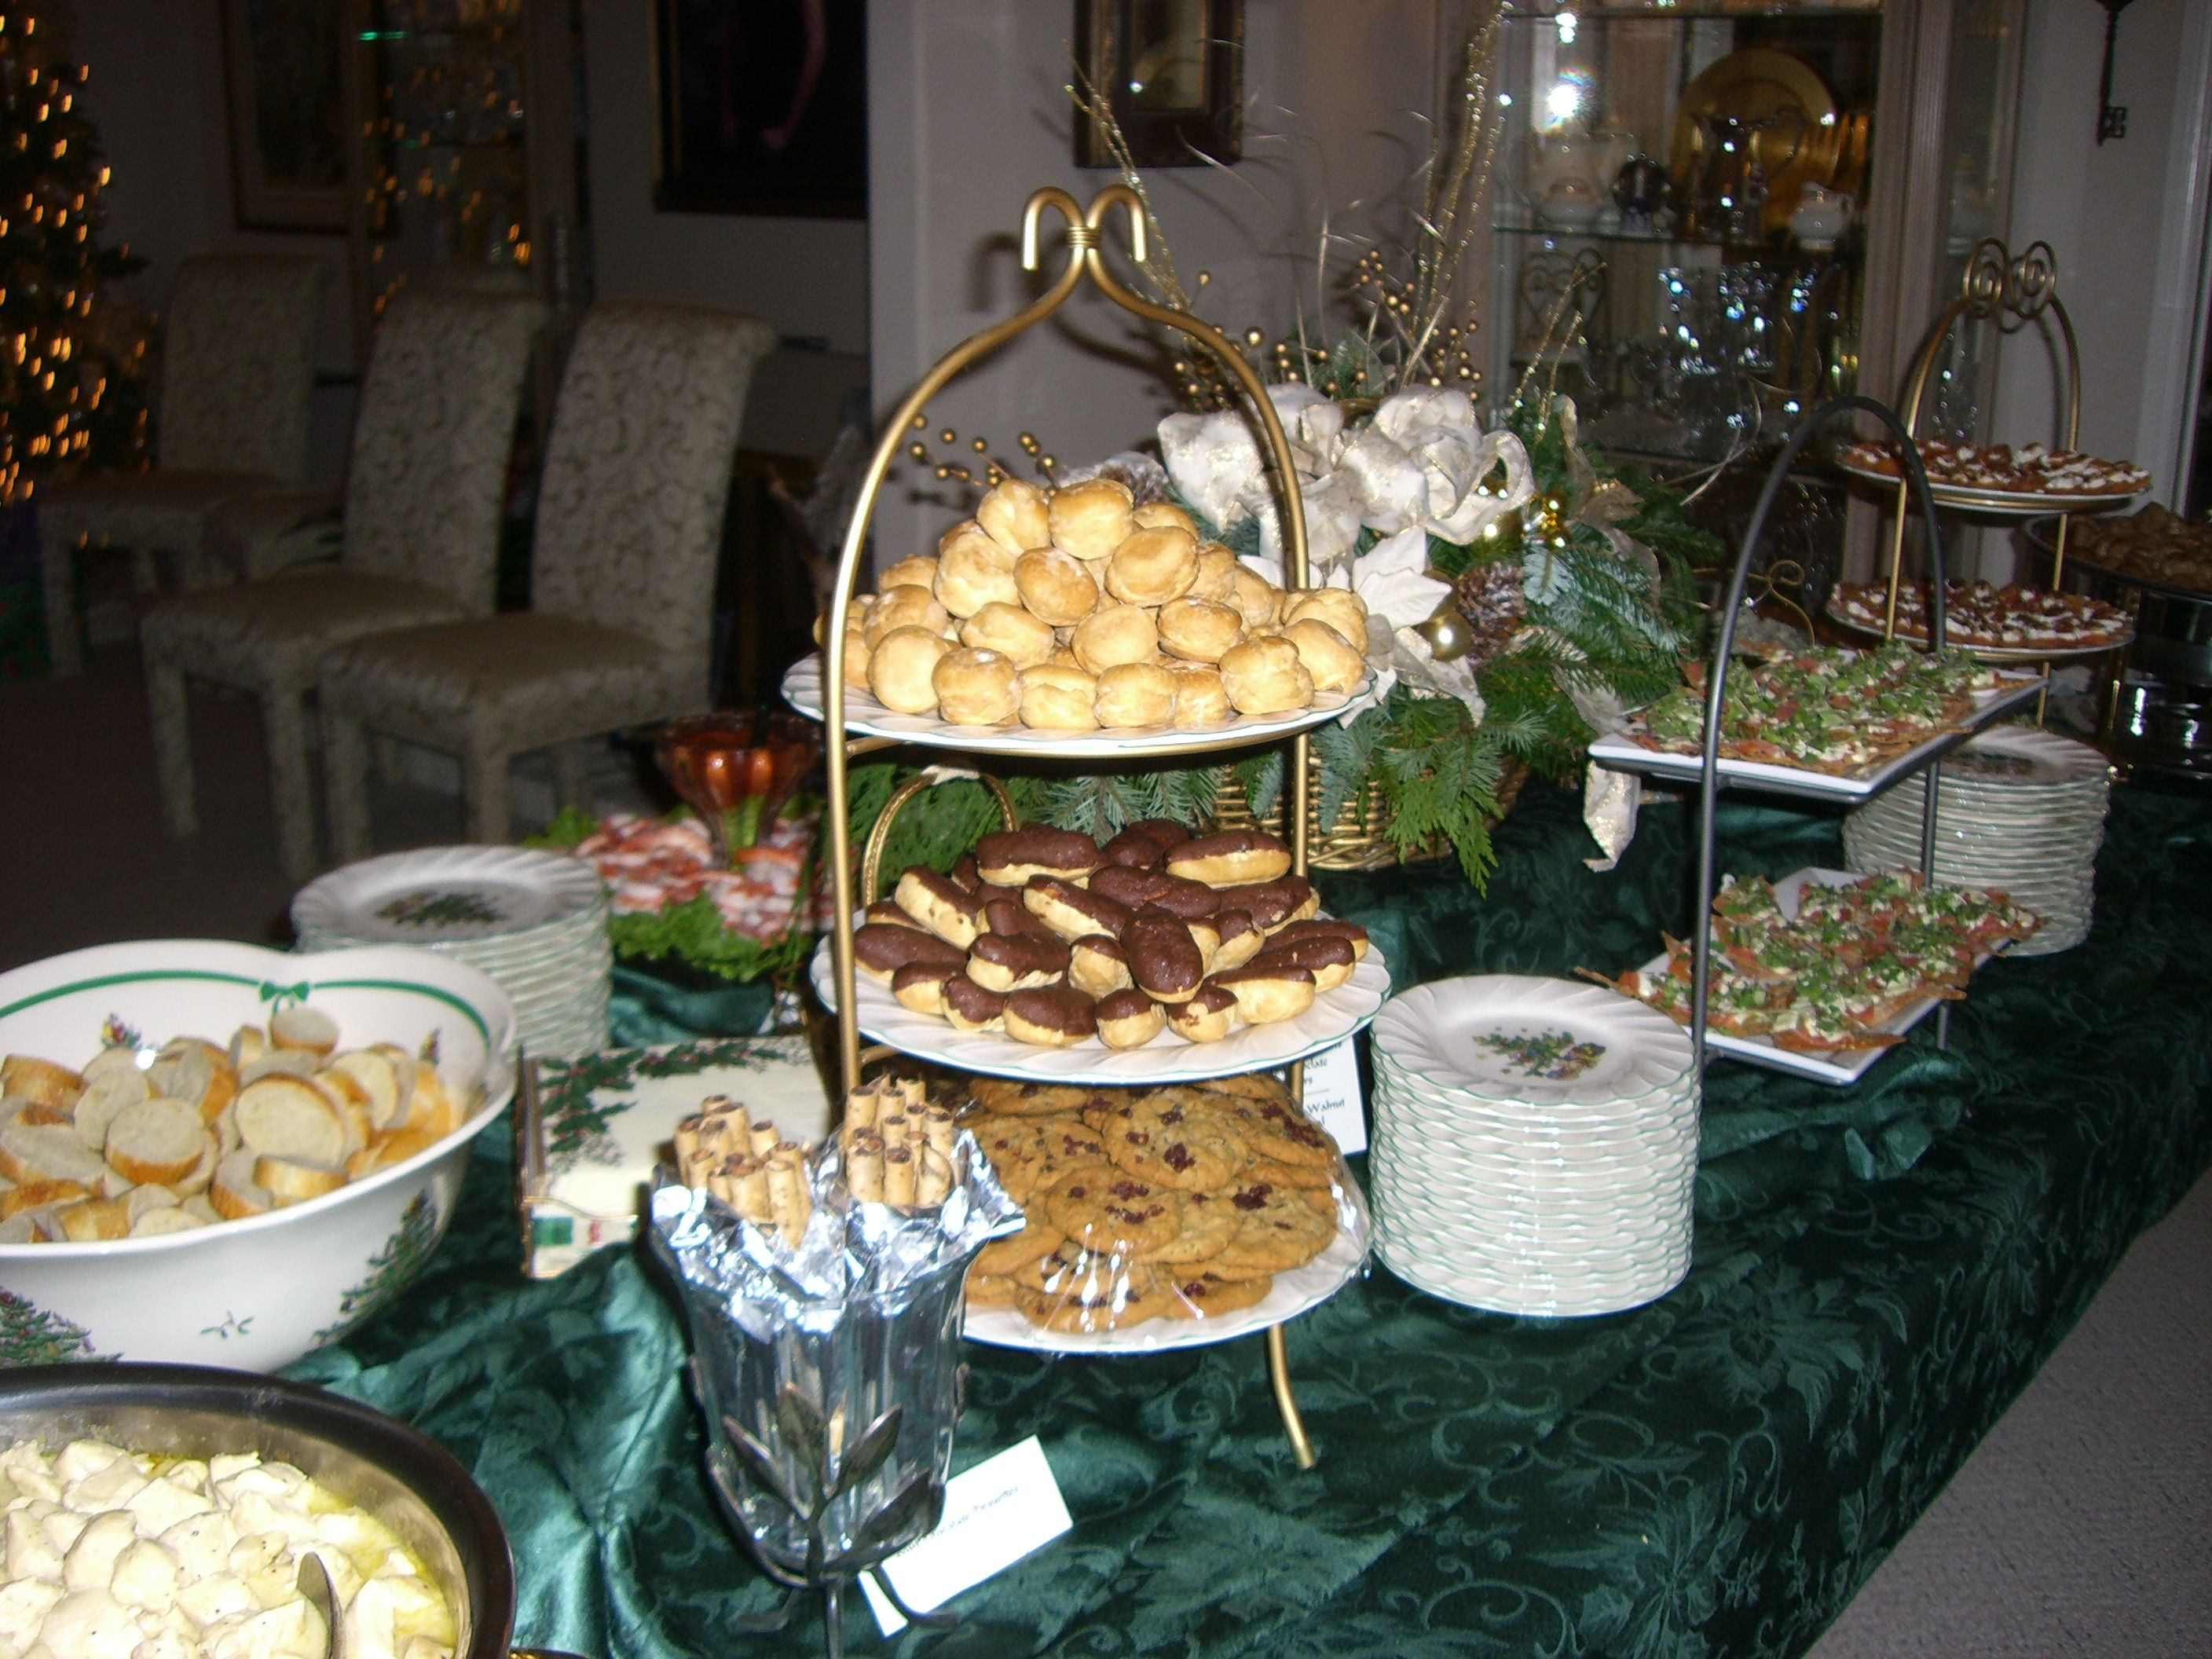 Table Decorating Ideas For Parties table decorating ideas outdoor party floating candles oranges ivy leaves party table decorations ideas Buffet Table Christmas Party Buffet Table Decorating Ideas Pictures